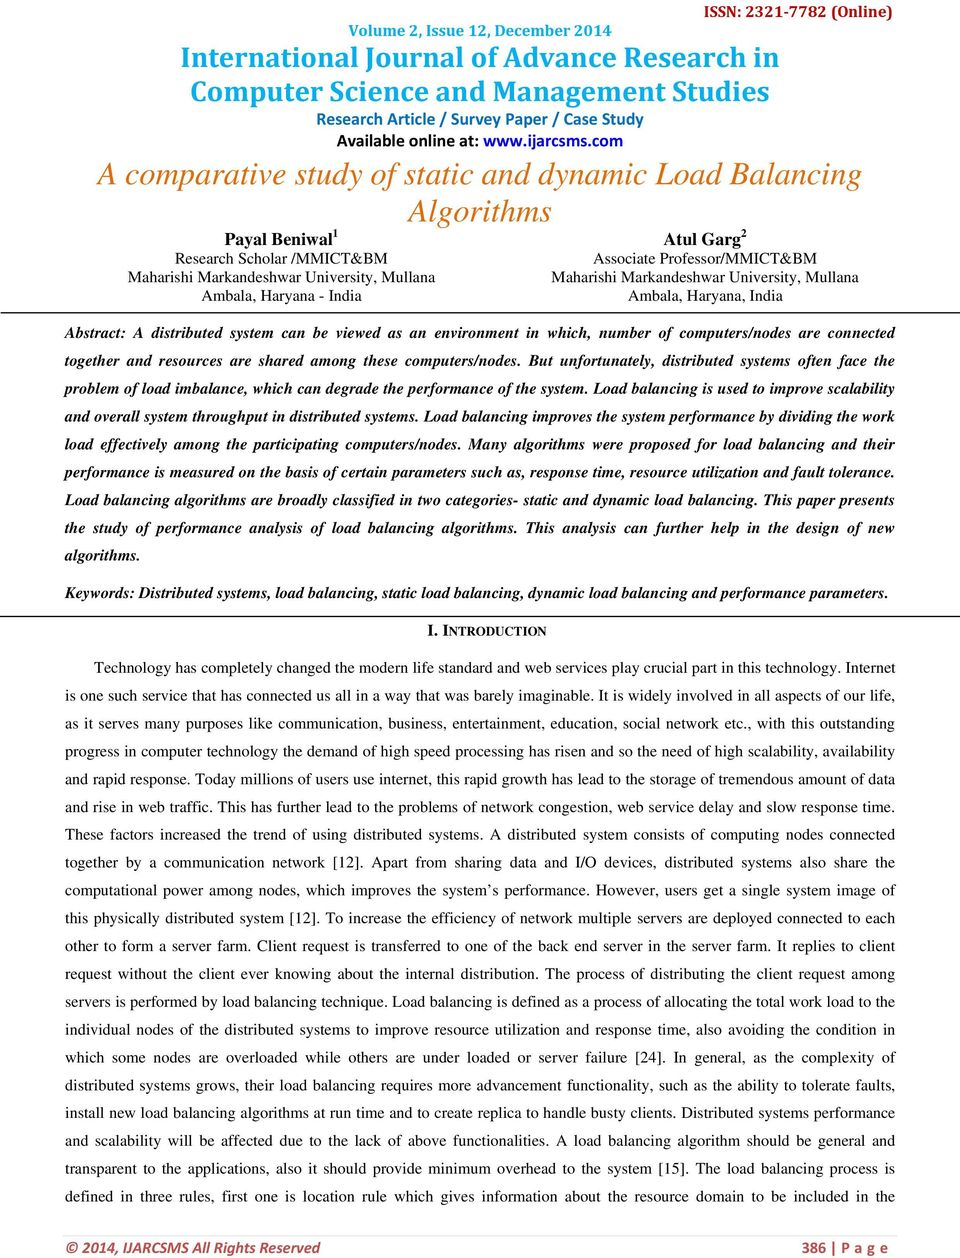 com A comparative study of static and dynamic Load Balancing Algorithms Payal Beniwal 1 Research Scholar /MMICT&BM Maharishi Markandeshwar University, Mullana Ambala, Haryana - India Atul Garg 2